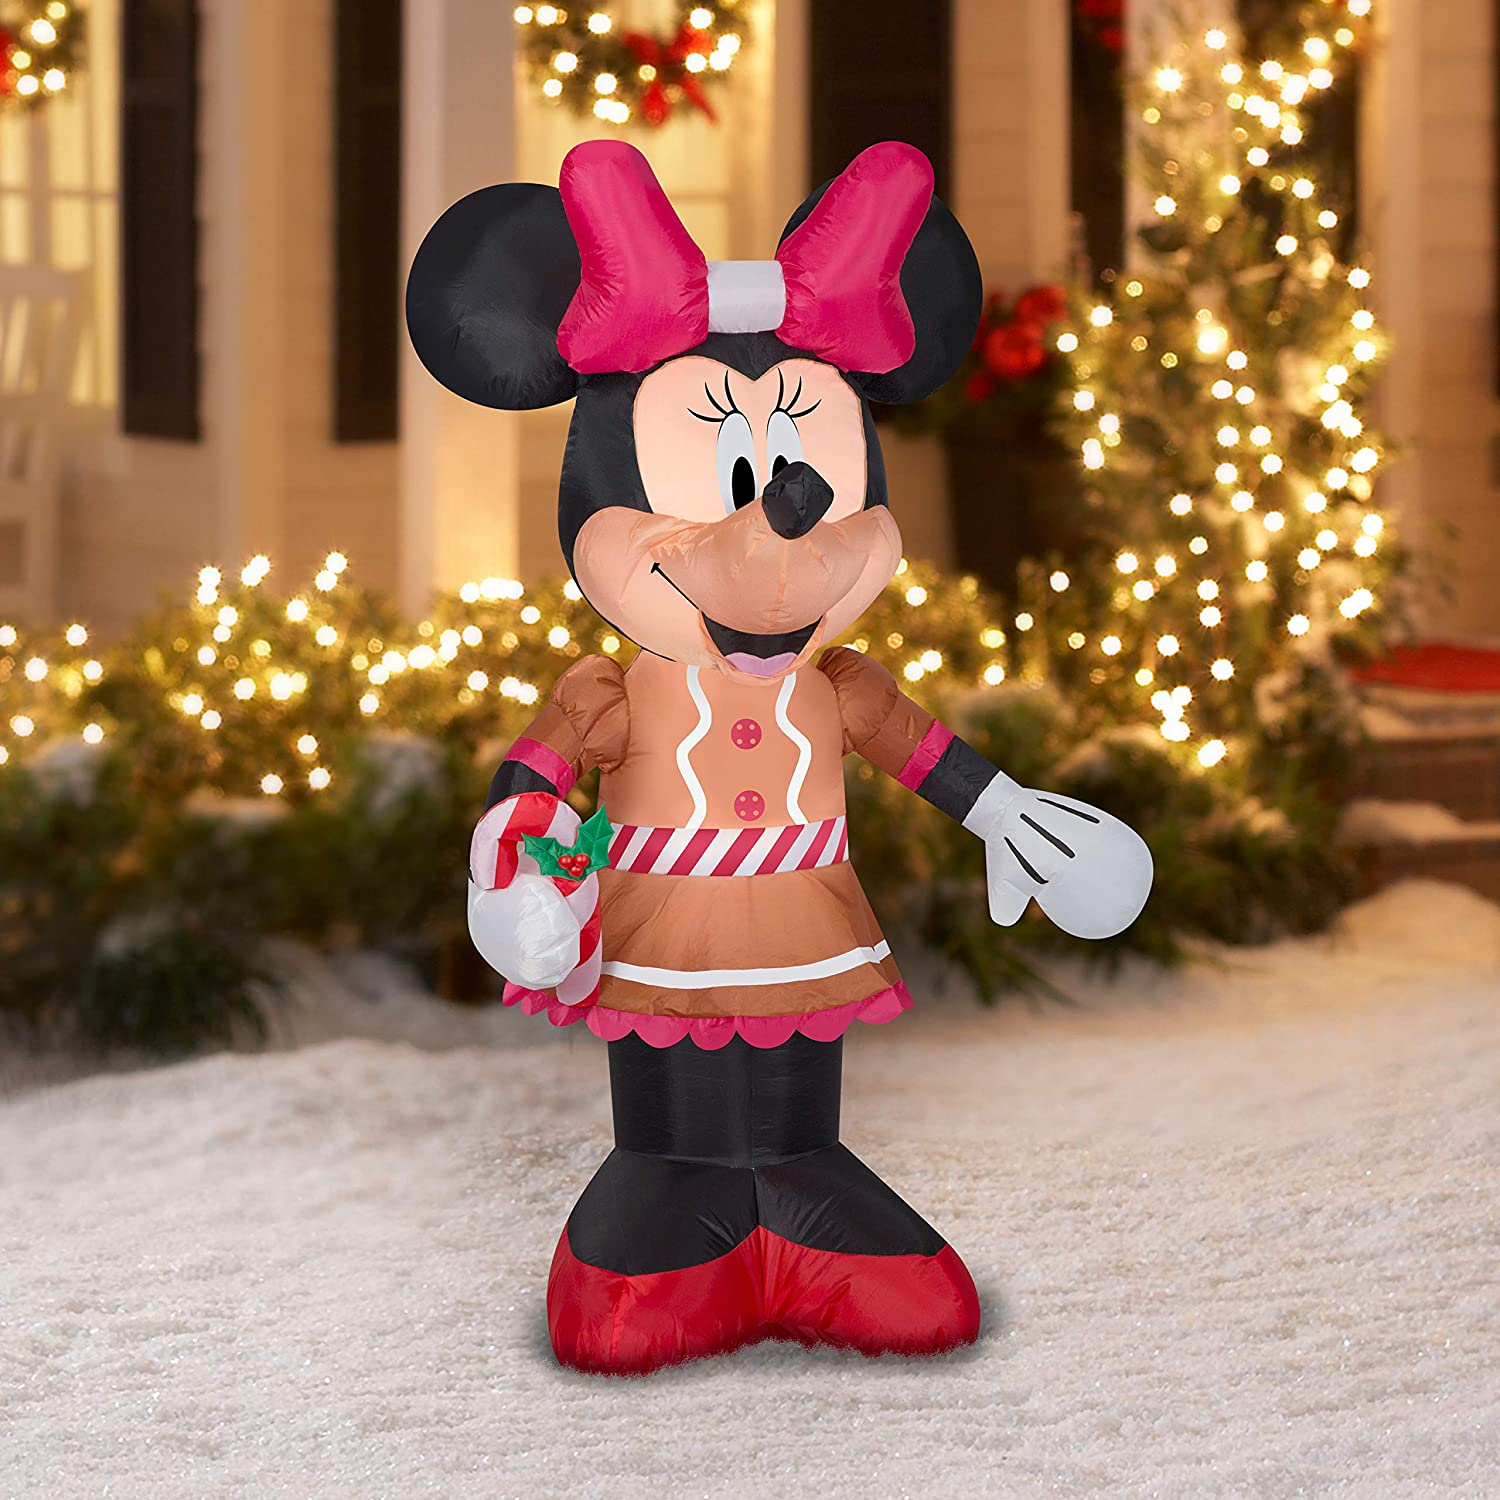 Disney Minnie Mouse Christmas Inflatable Airblown Gemmy Industries 5 FT Lights Up